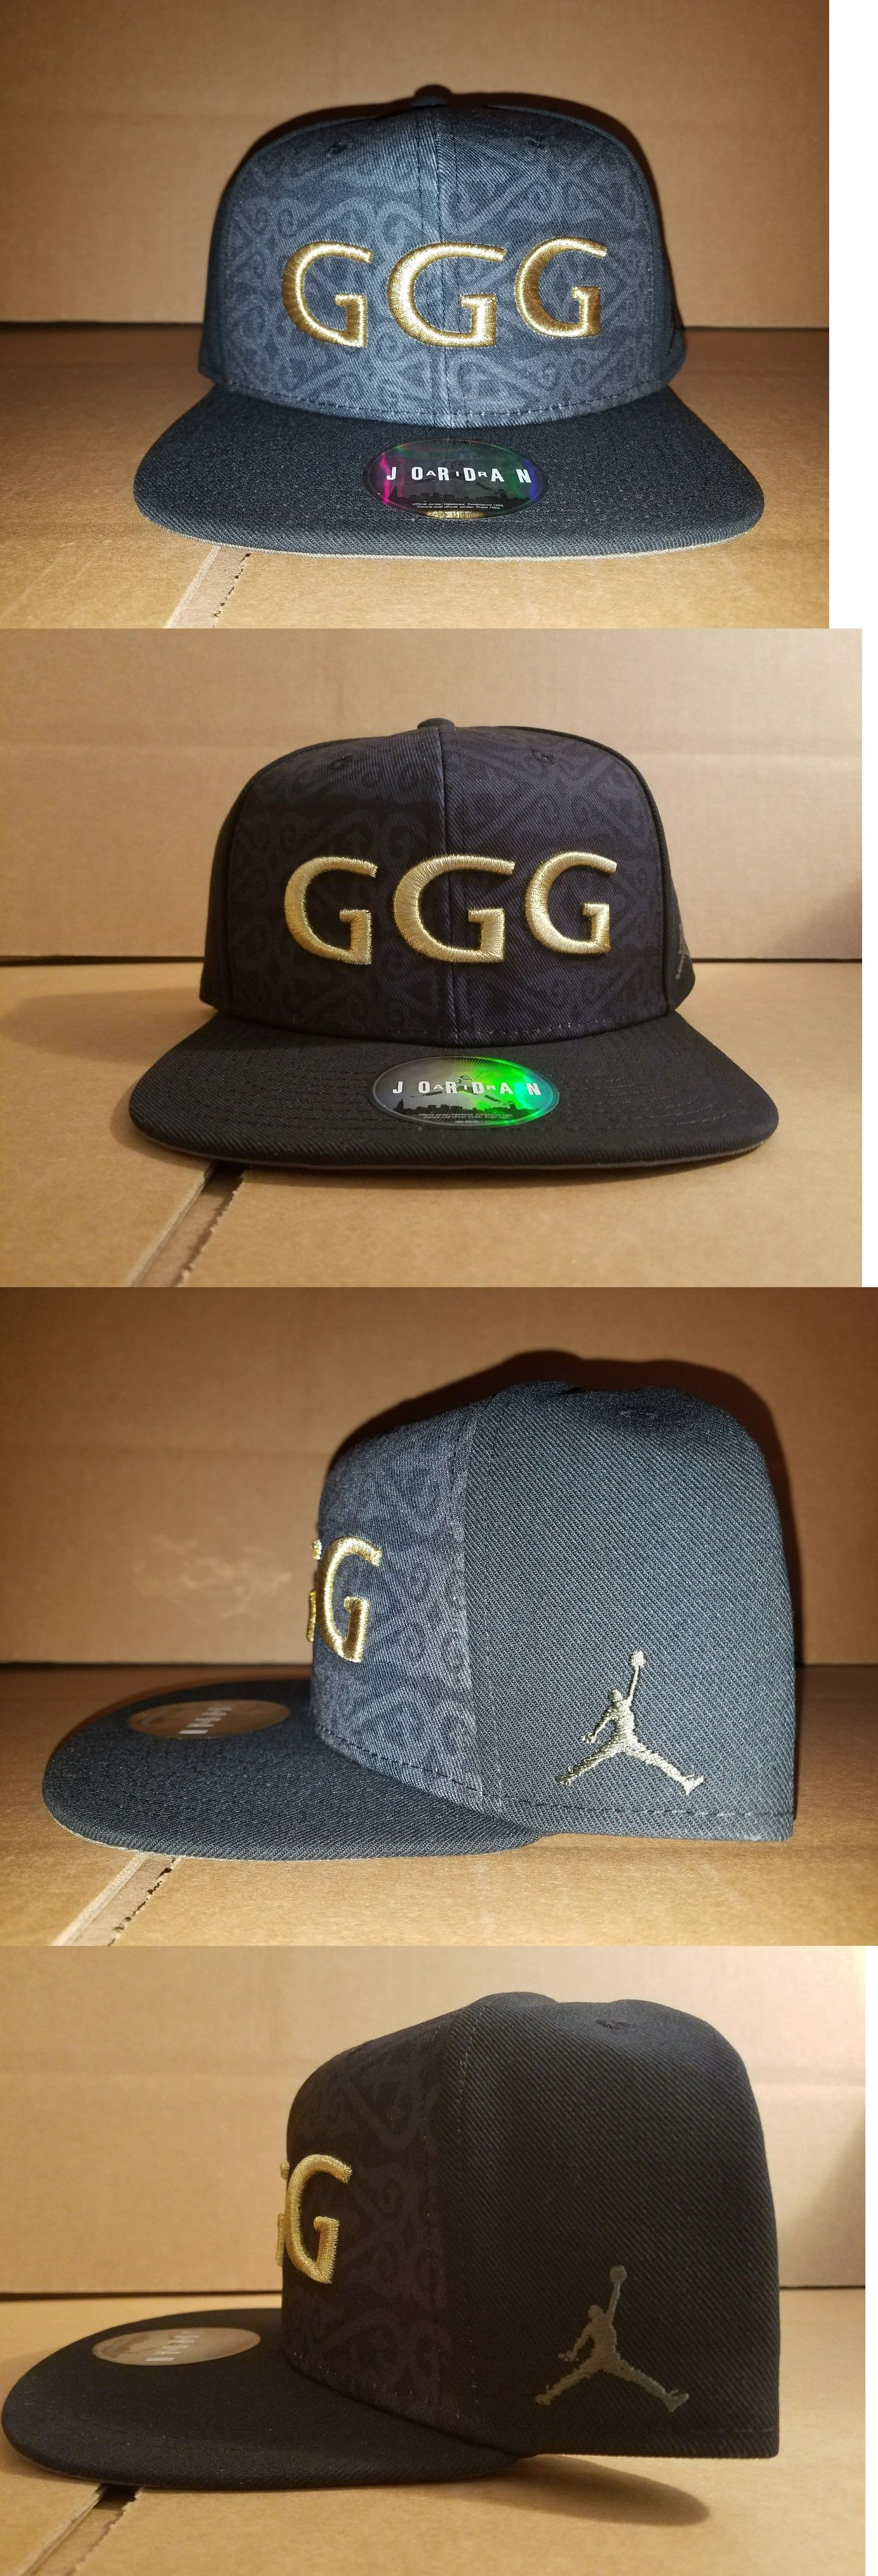 Hats 52365  Le Nike Air Jordan Gennady Golovkin Black Triple Ggg Snapback  Hat -  BUY IT NOW ONLY   100 on eBay! 542342e2e41b